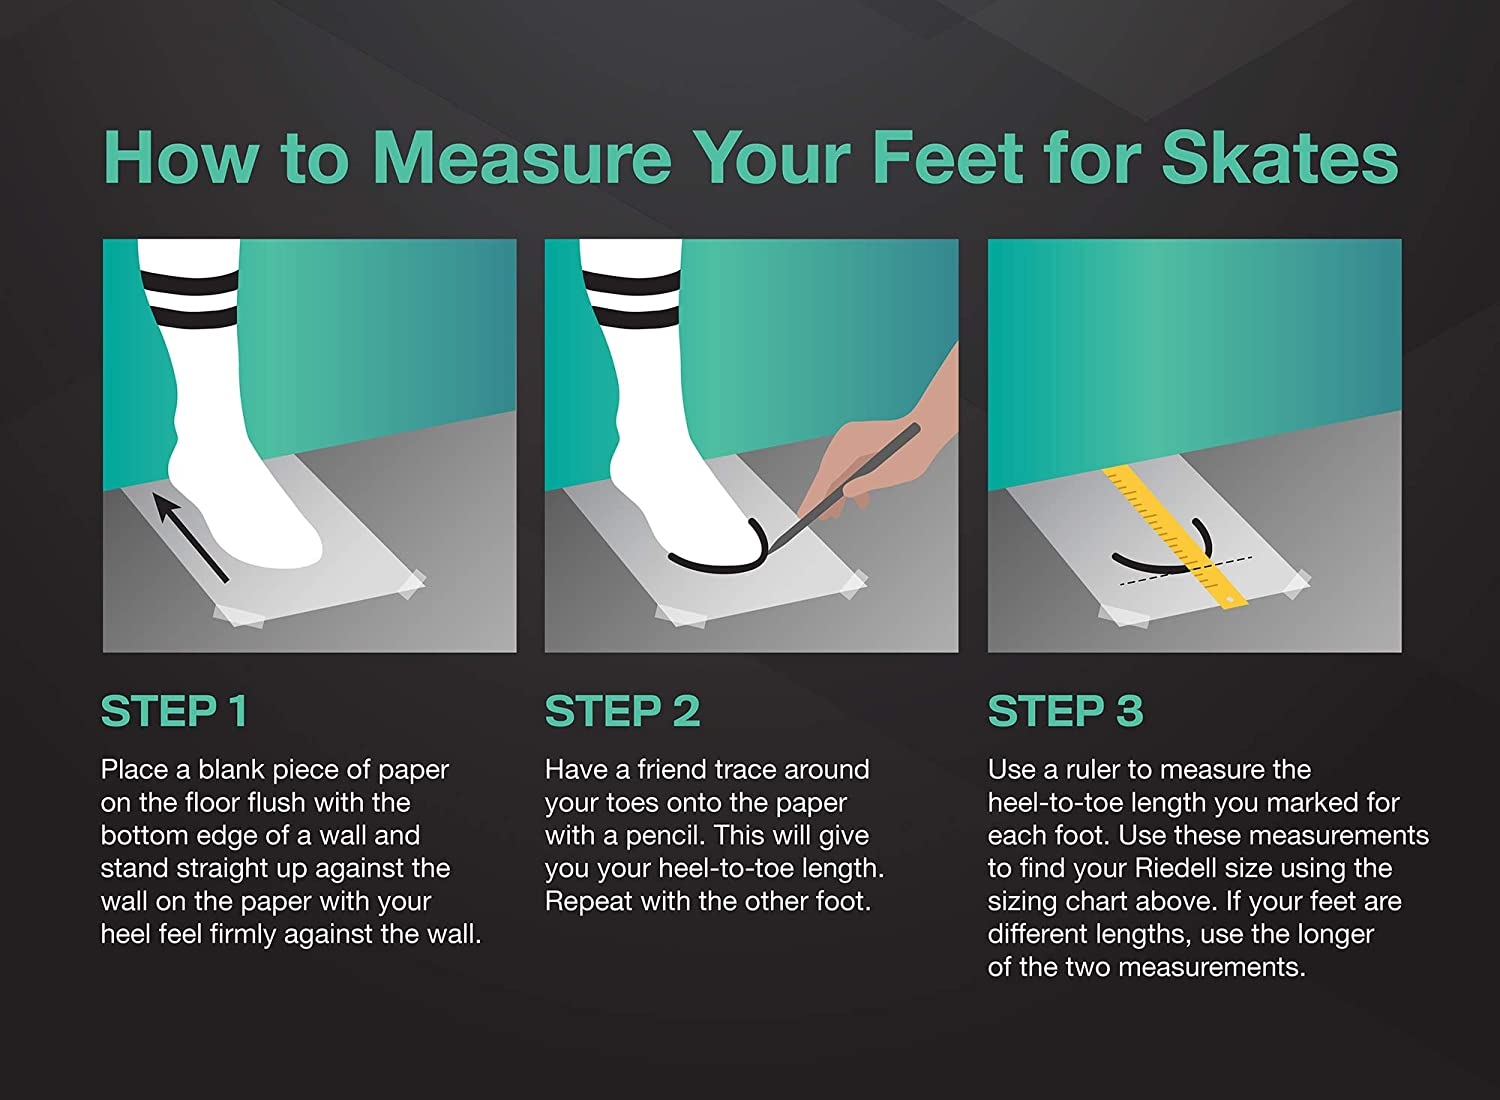 how-to-measure-your-feet-for-skates.jpg